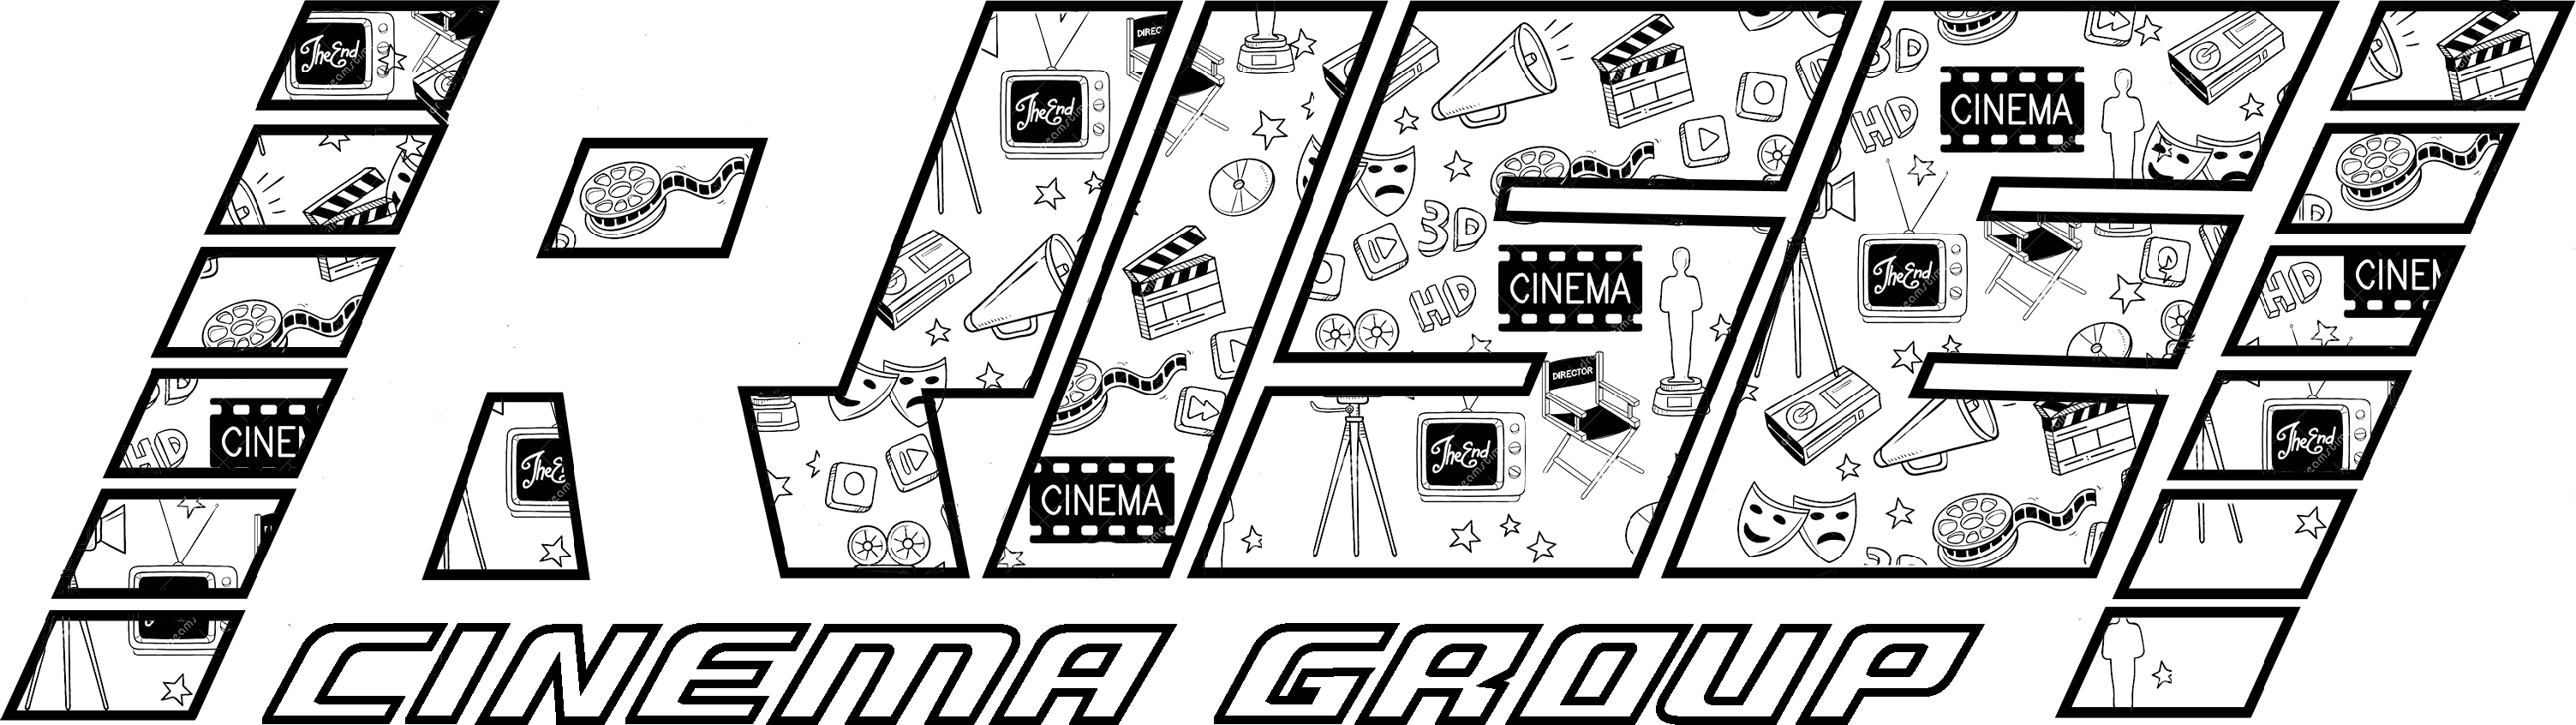 RISE Cinema group